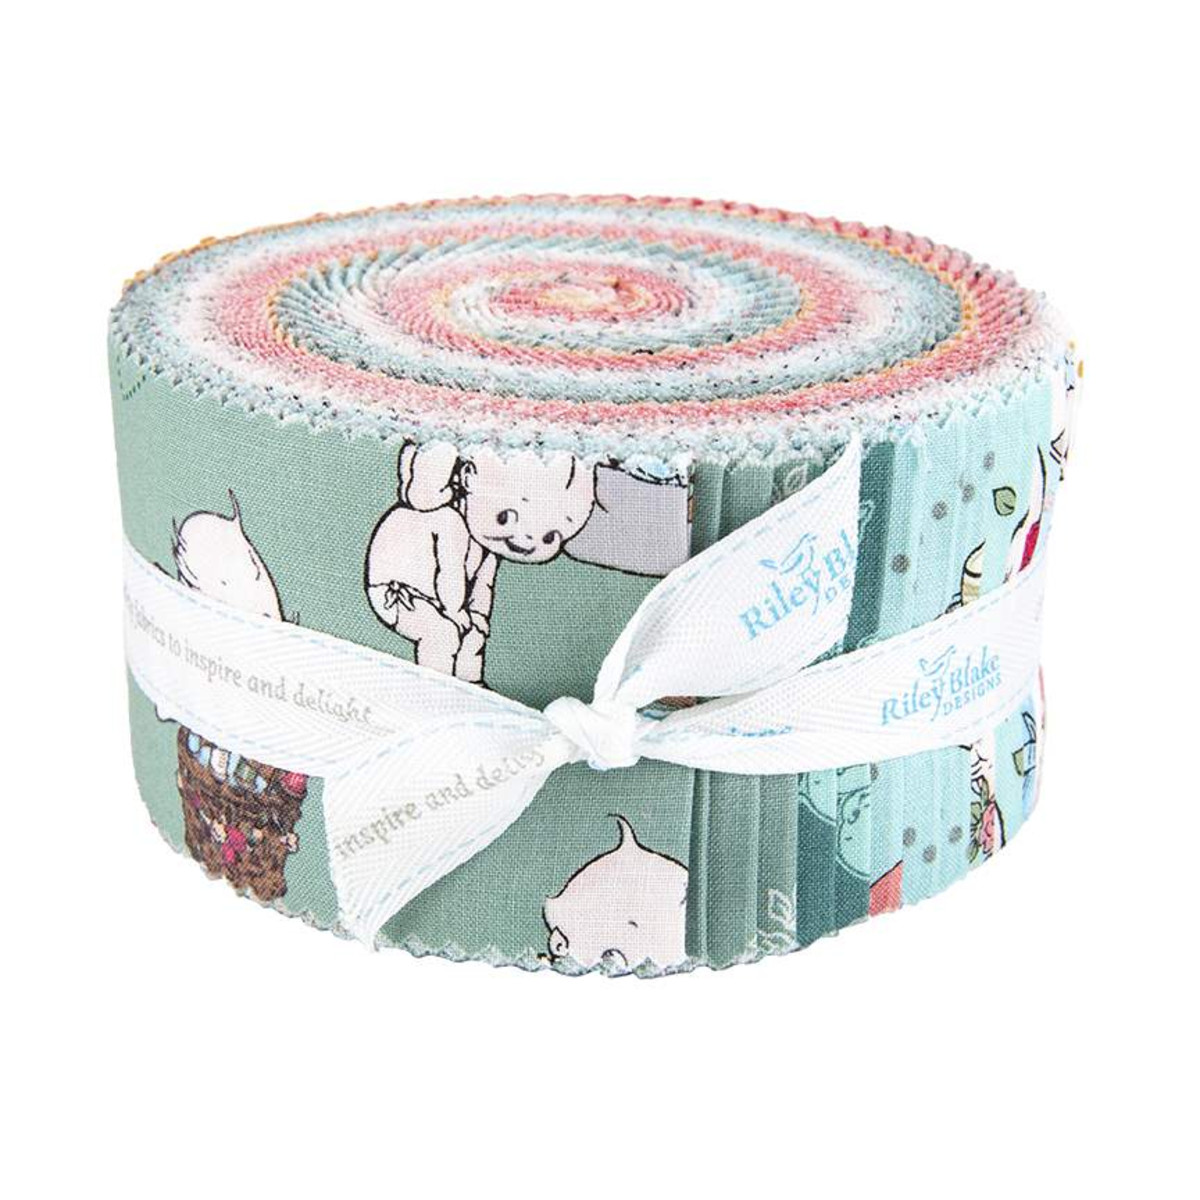 Riley Blake Jelly Roll - Sew Kewpie